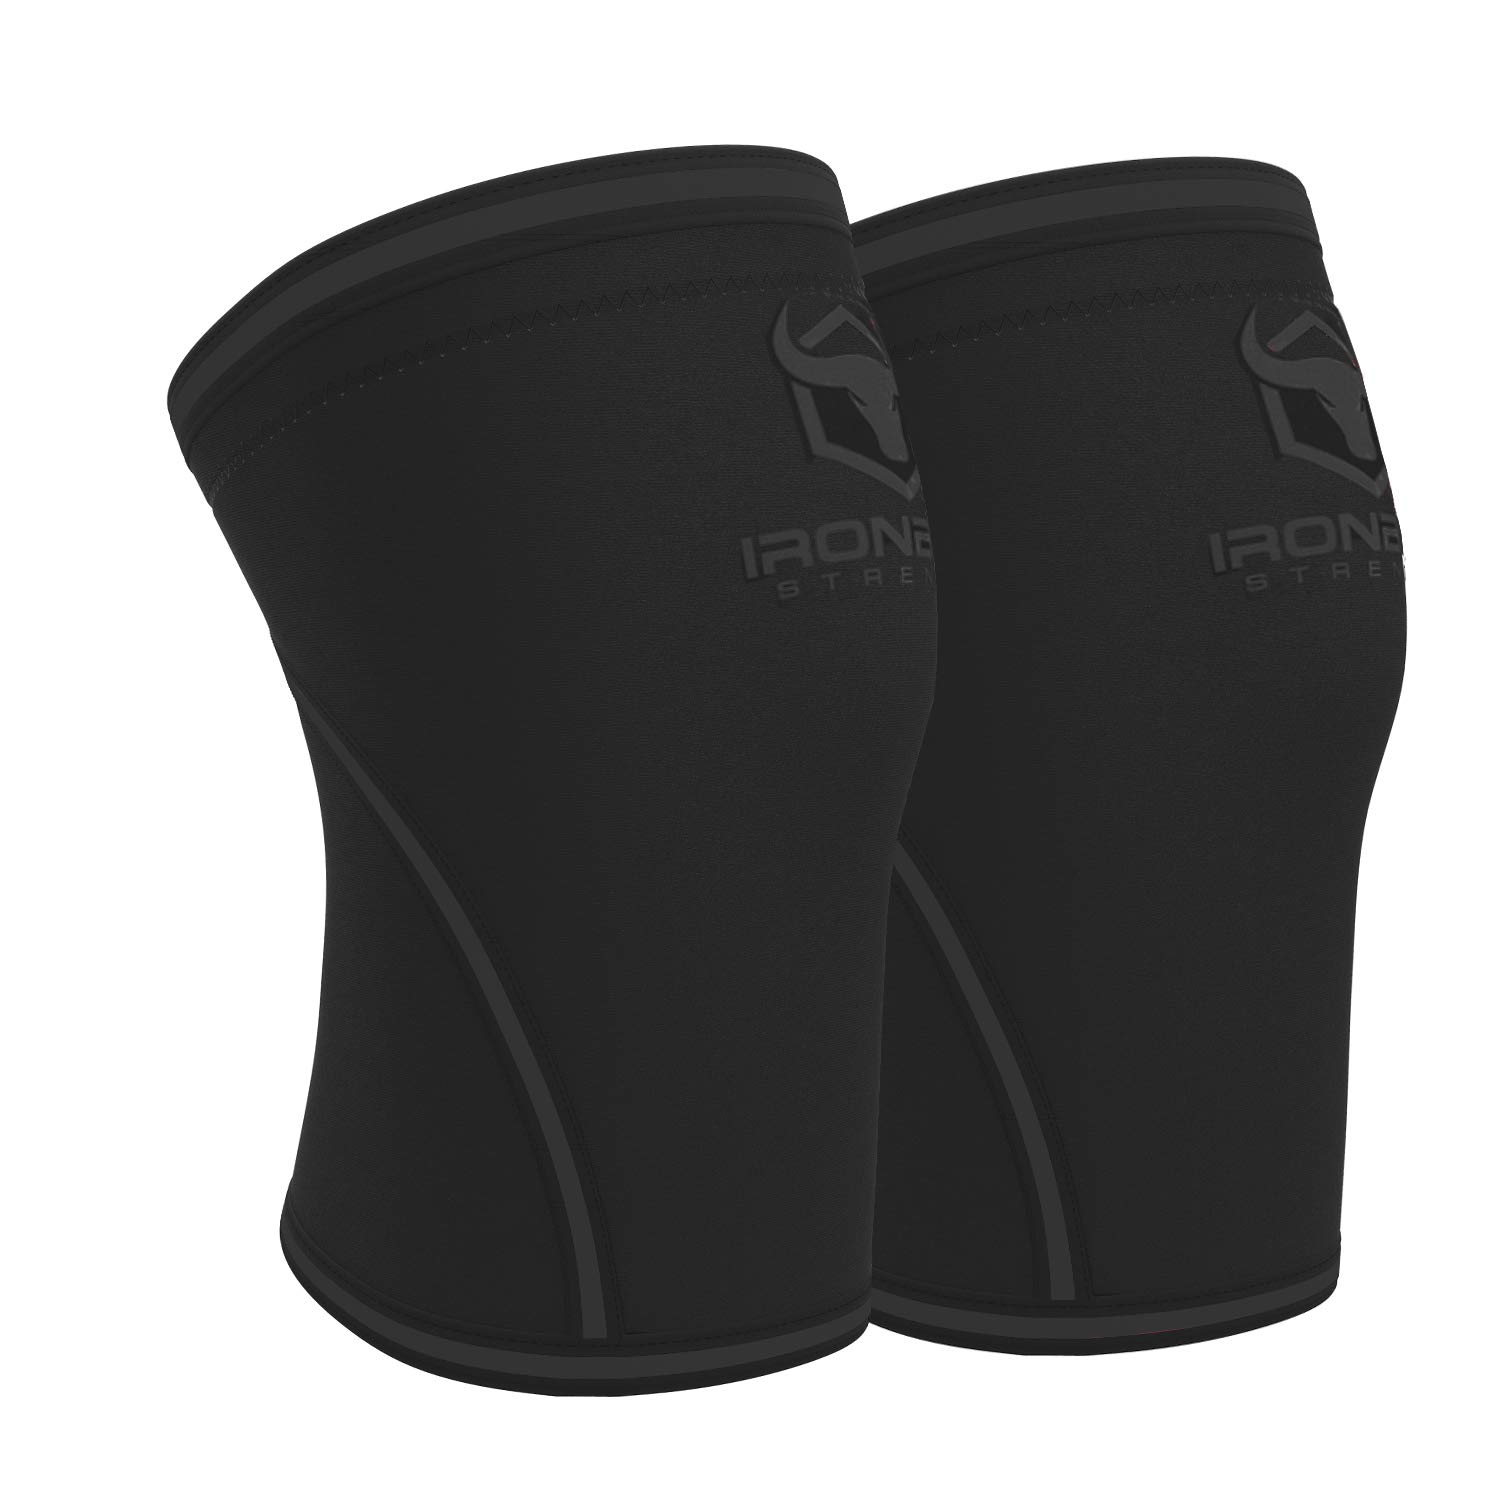 Knee Sleeves 7mm (1 Pair) - High Performance Knee Sleeve Support for Weight Lifting, Cross Training & Powerlifting - Best Knee Wraps & Straps Compression - for Men and Women (Black/Charcoal, Medium) by Iron Bull Strength